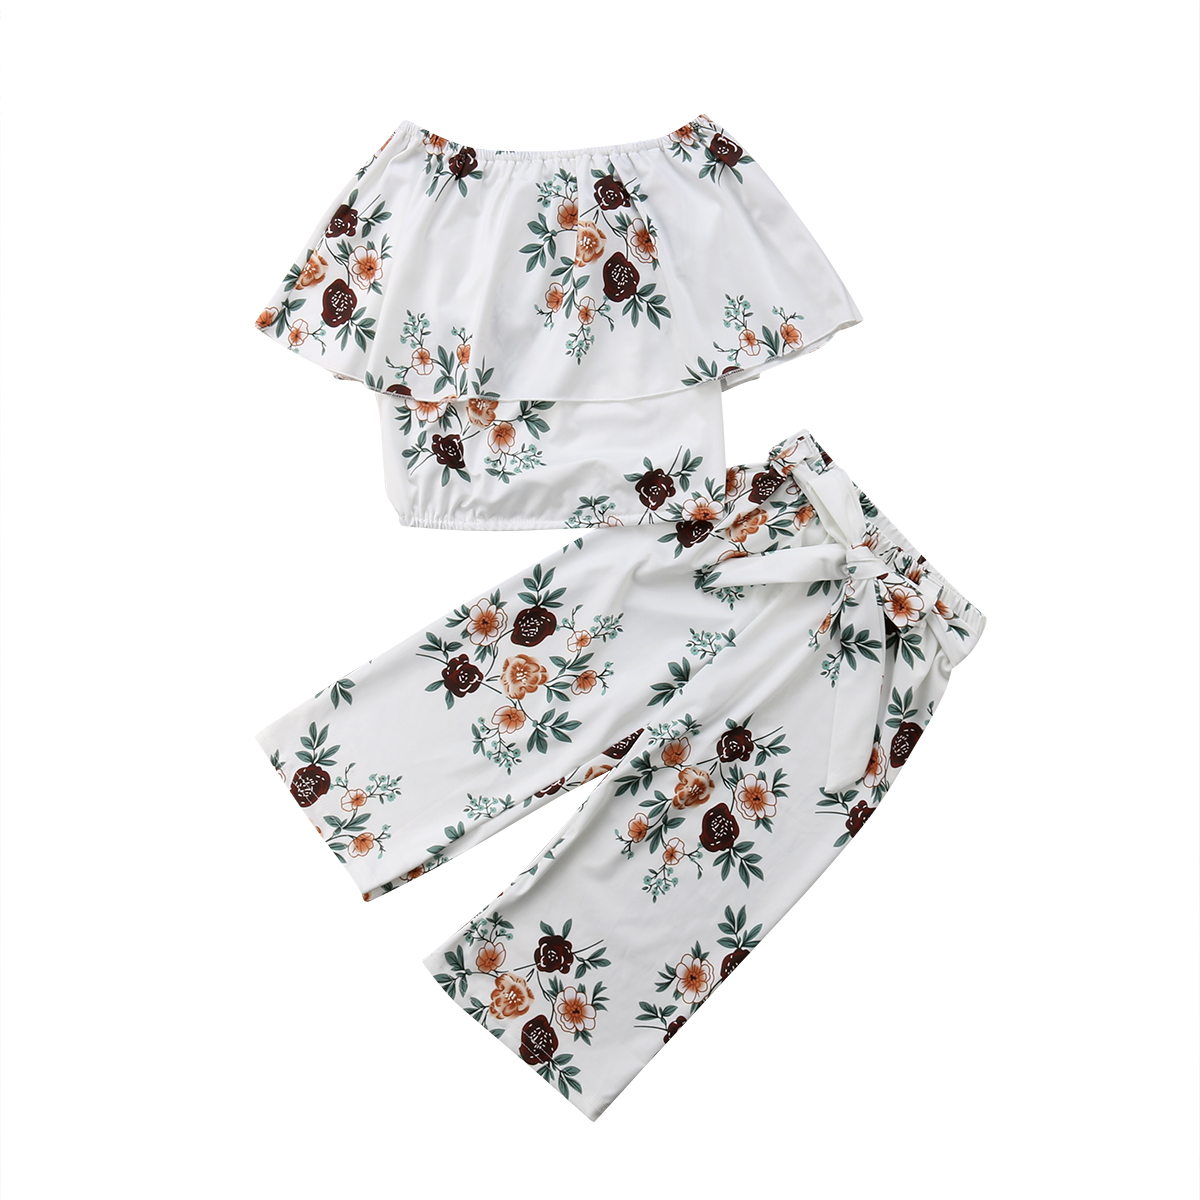 Kids Baby Girl Flower Clothing Set Summer Off Shoulder Floral Tops Pants Outfits Child Clothes